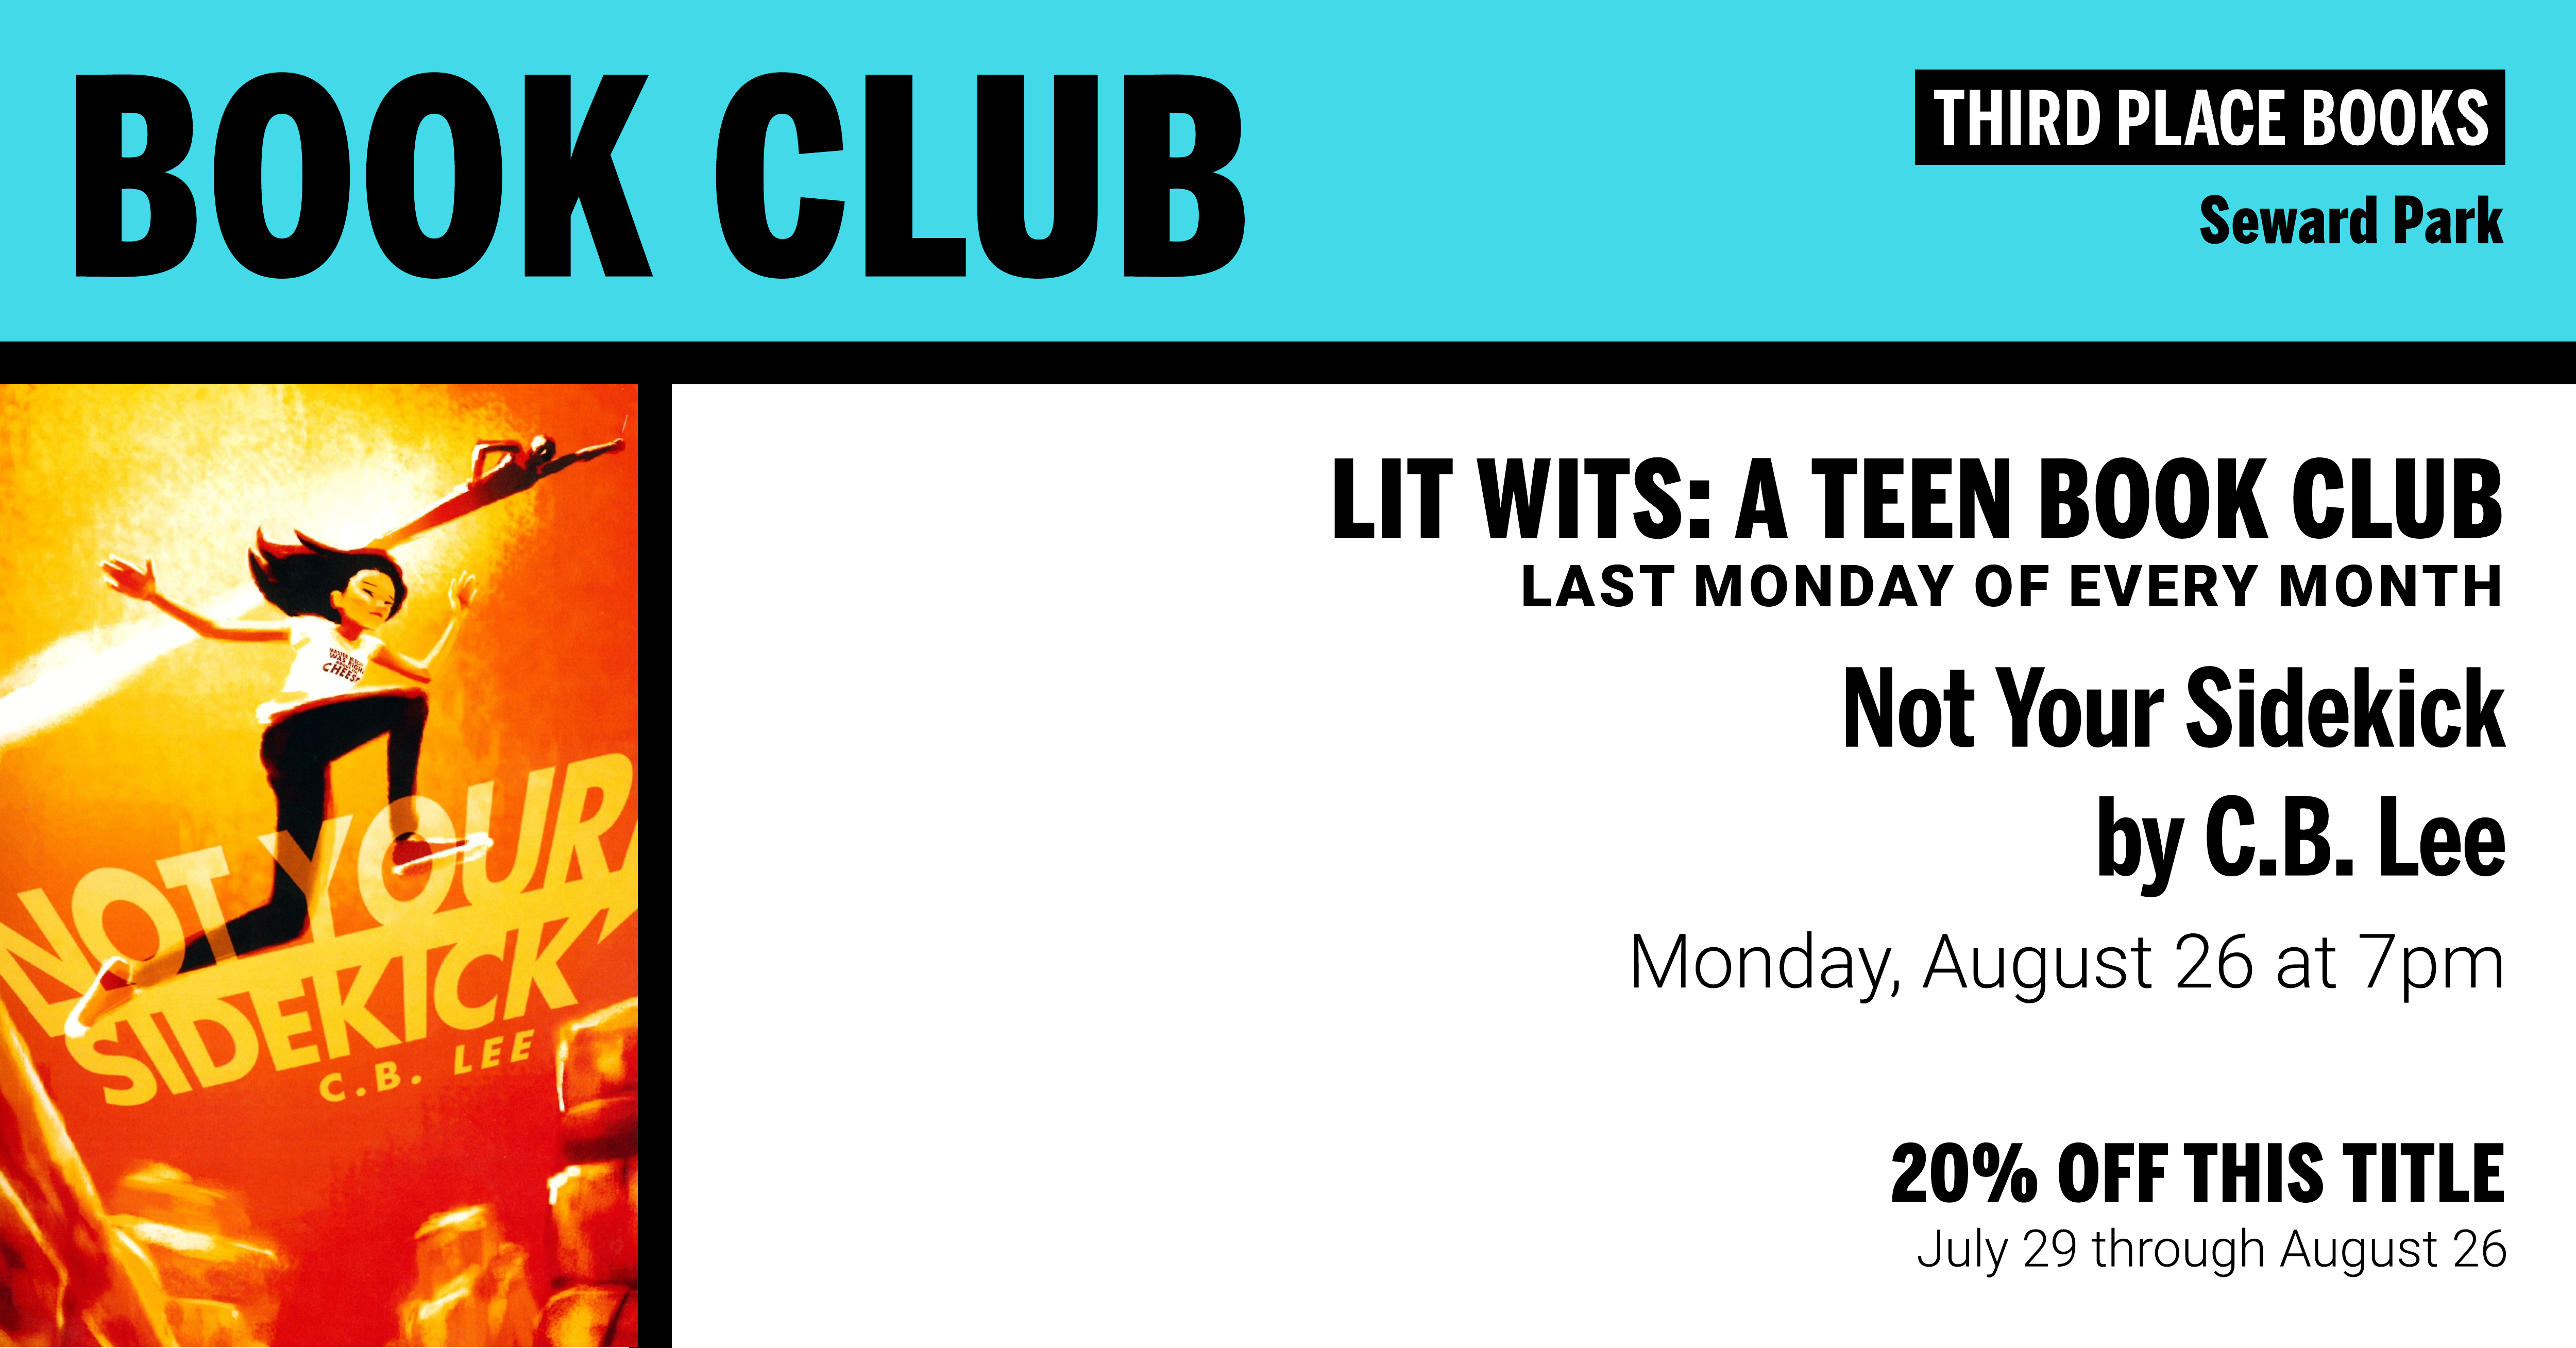 Lit Wits: A Teen Book Club discussing Not Your Sidekick by C.B. Lee on Monday, August 26 at 7pm